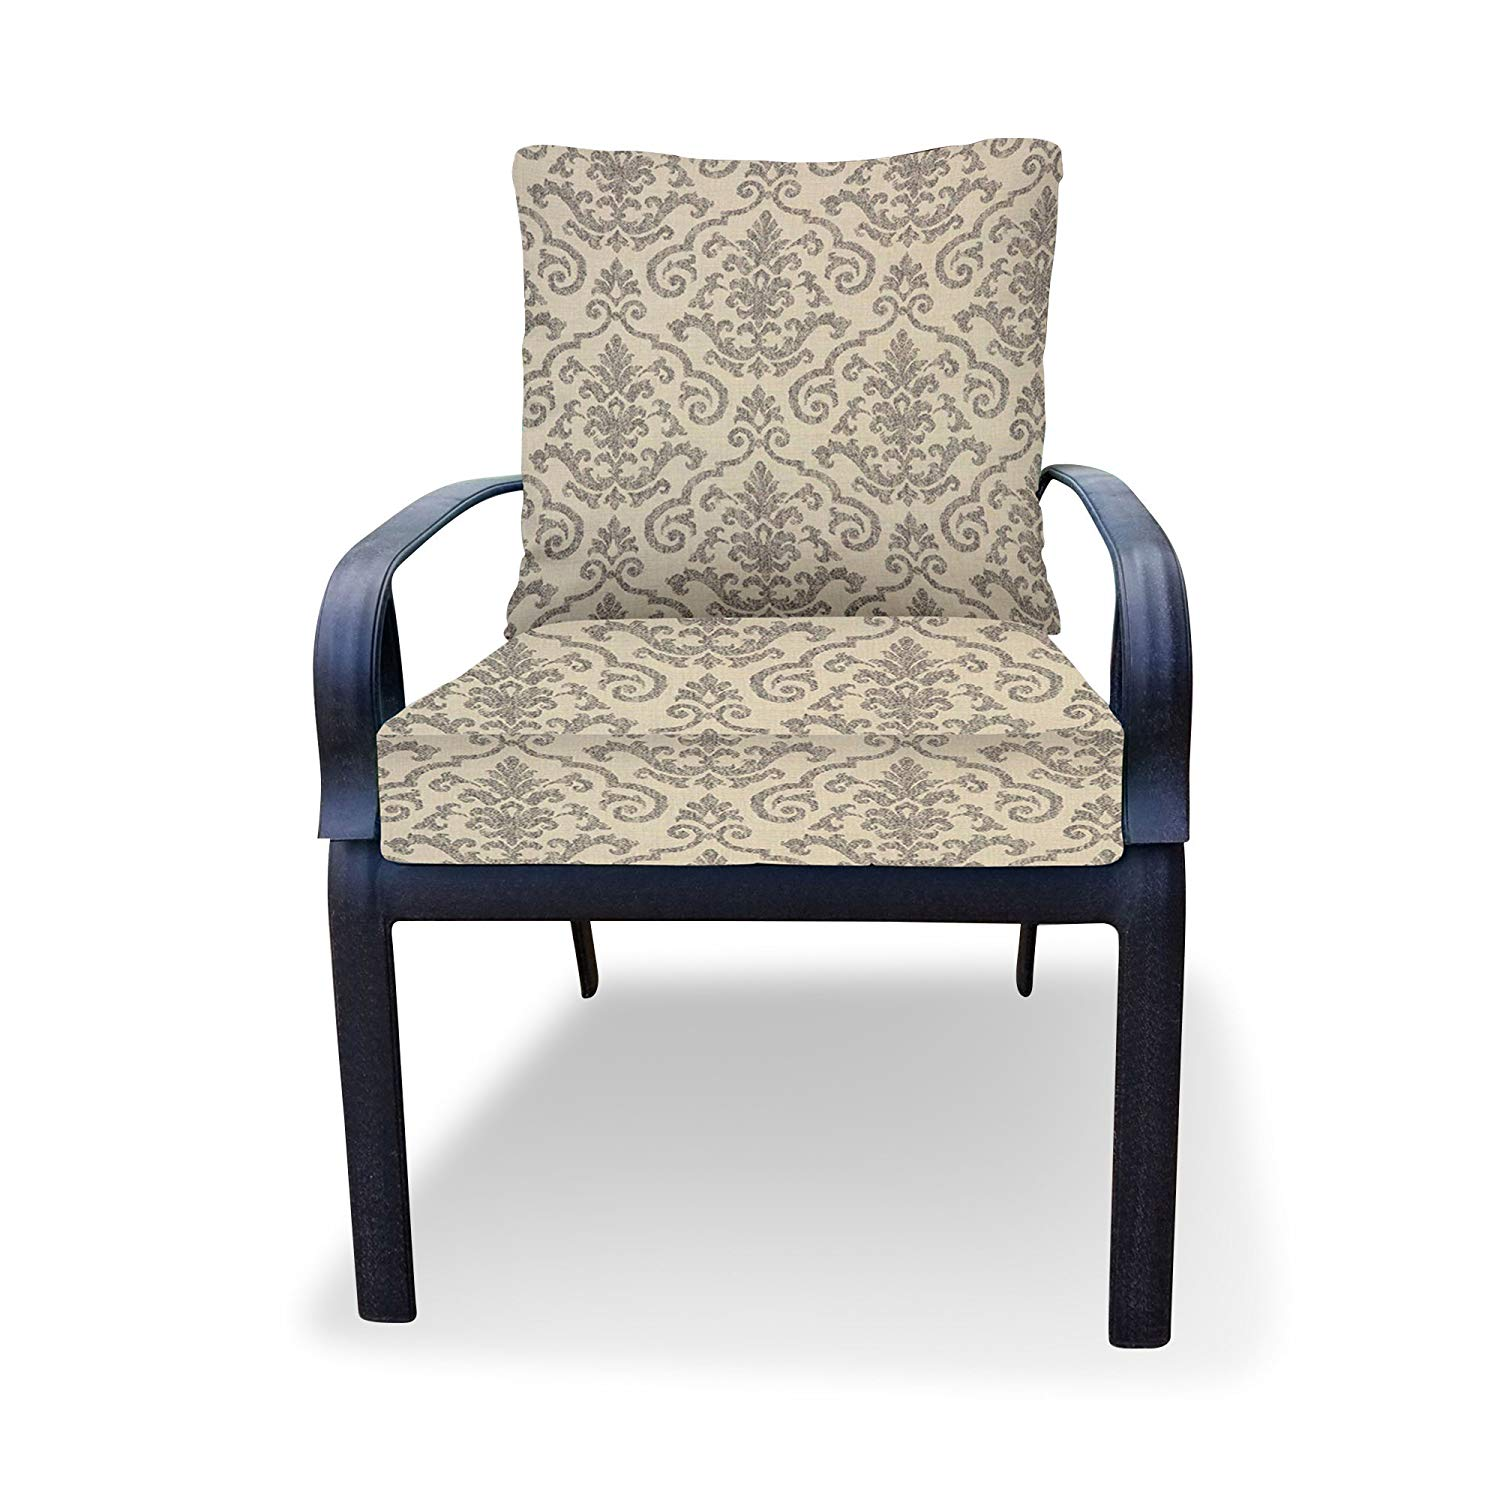 Get Quotations Thomas Collection Outdoor Cushion Set Grey Ivory Cushions For Chair Chaise Or Seat